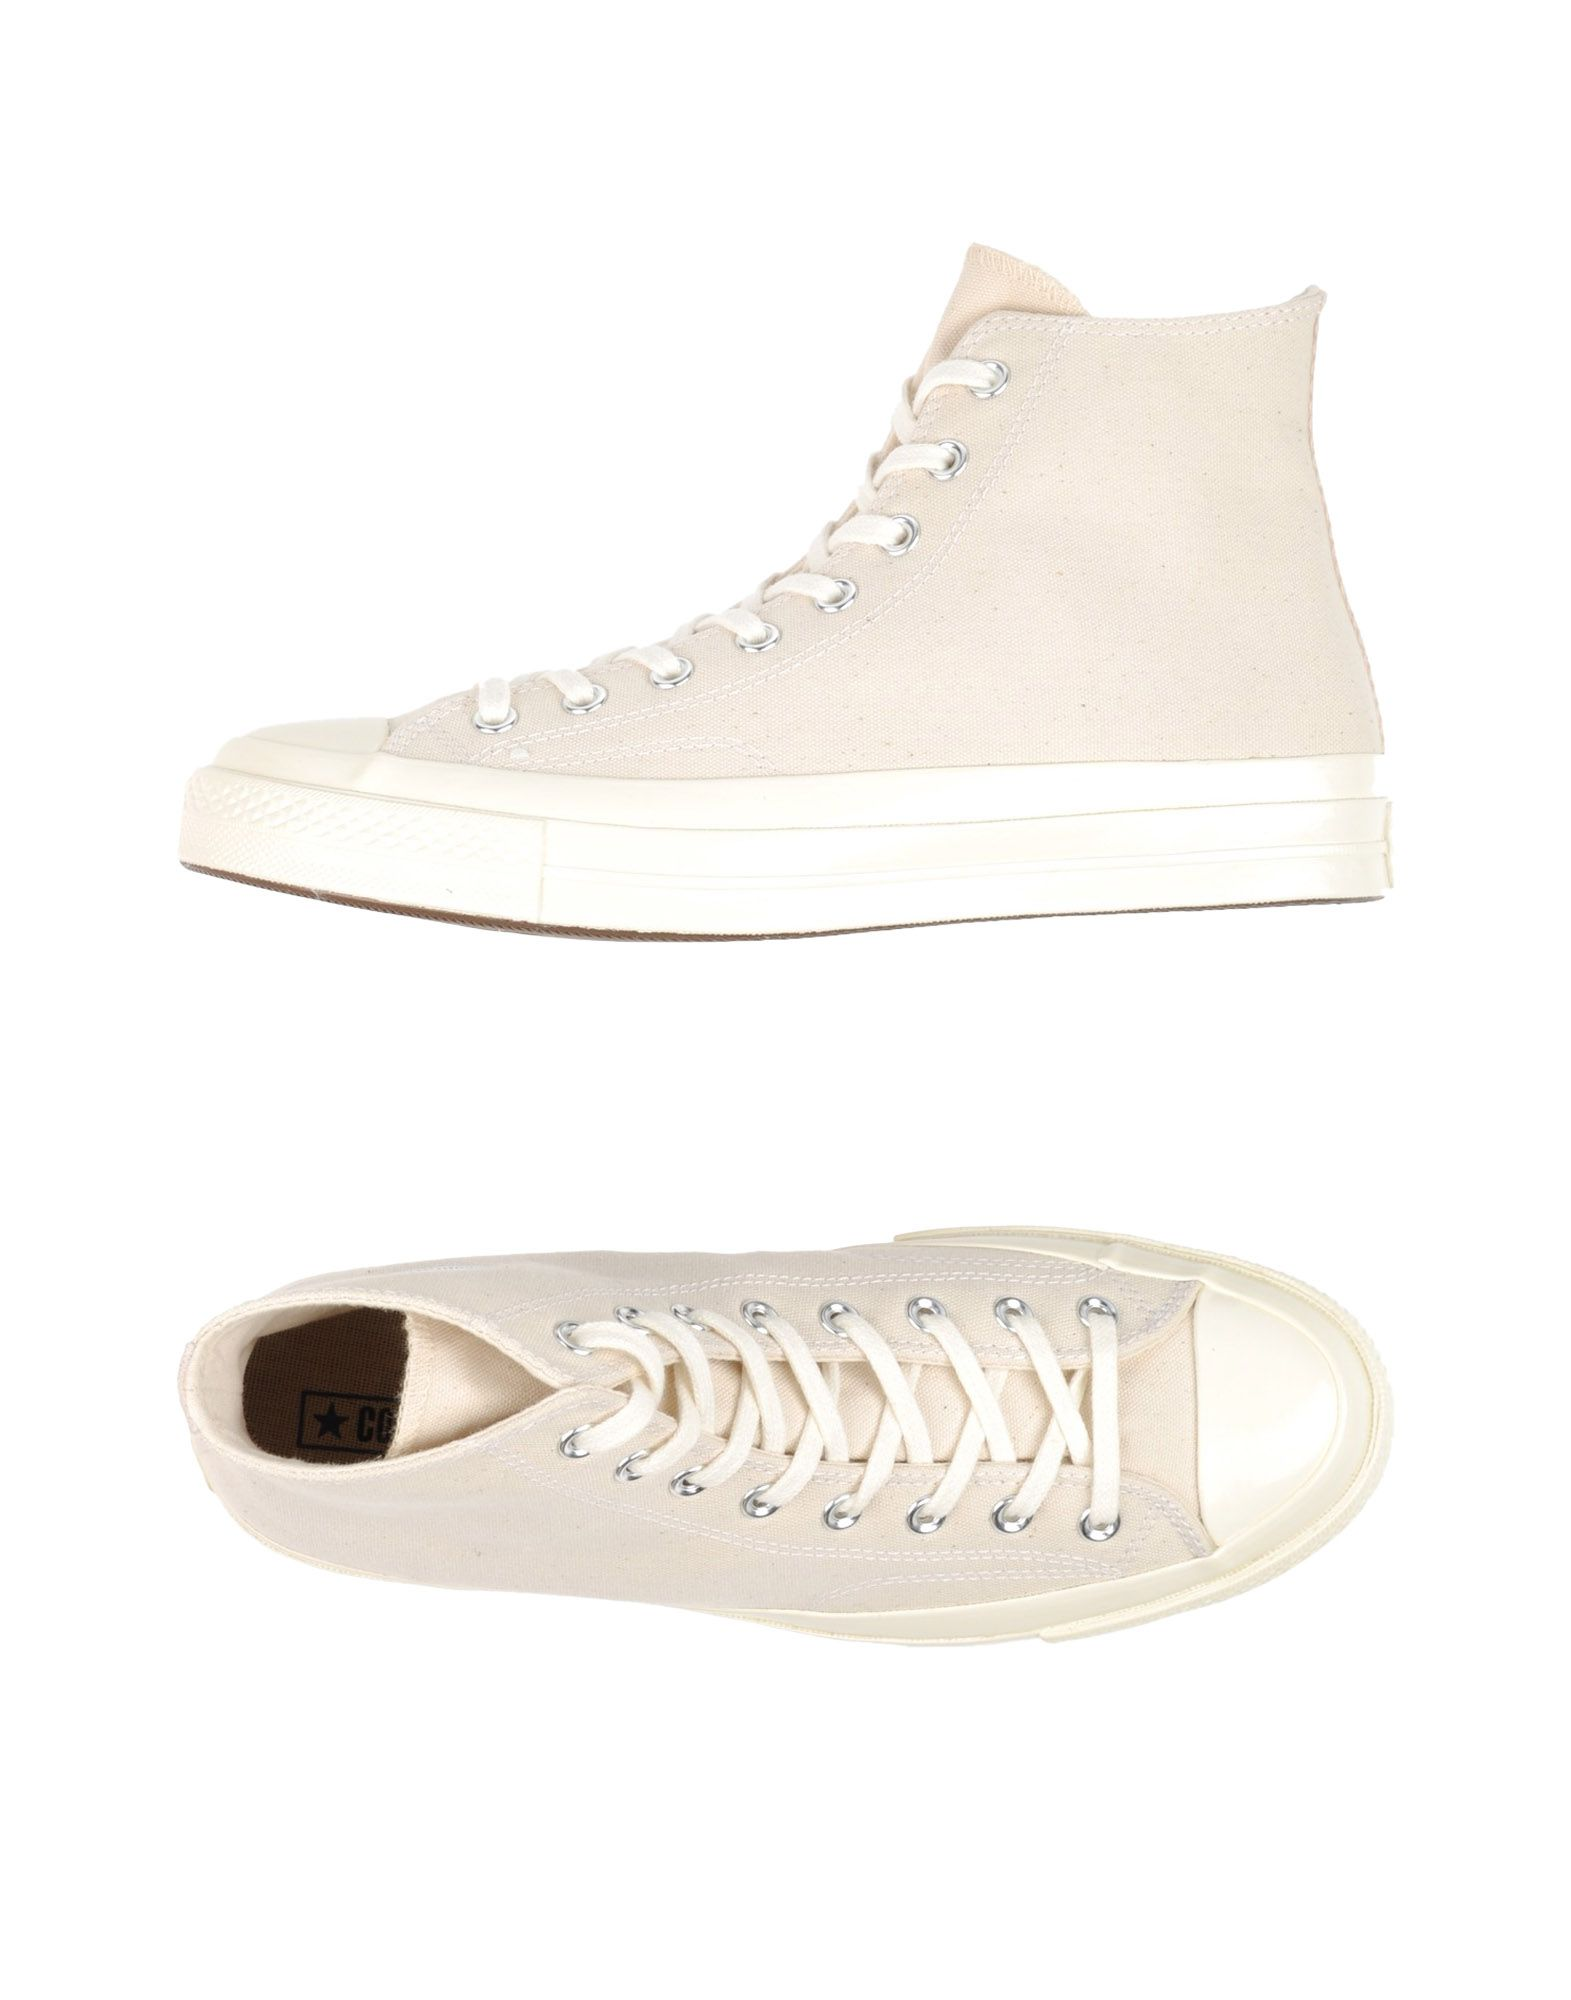 Sneakers Converse All Star All Star Prem Hi 1970'S Canvas - Uomo - 11015691WB